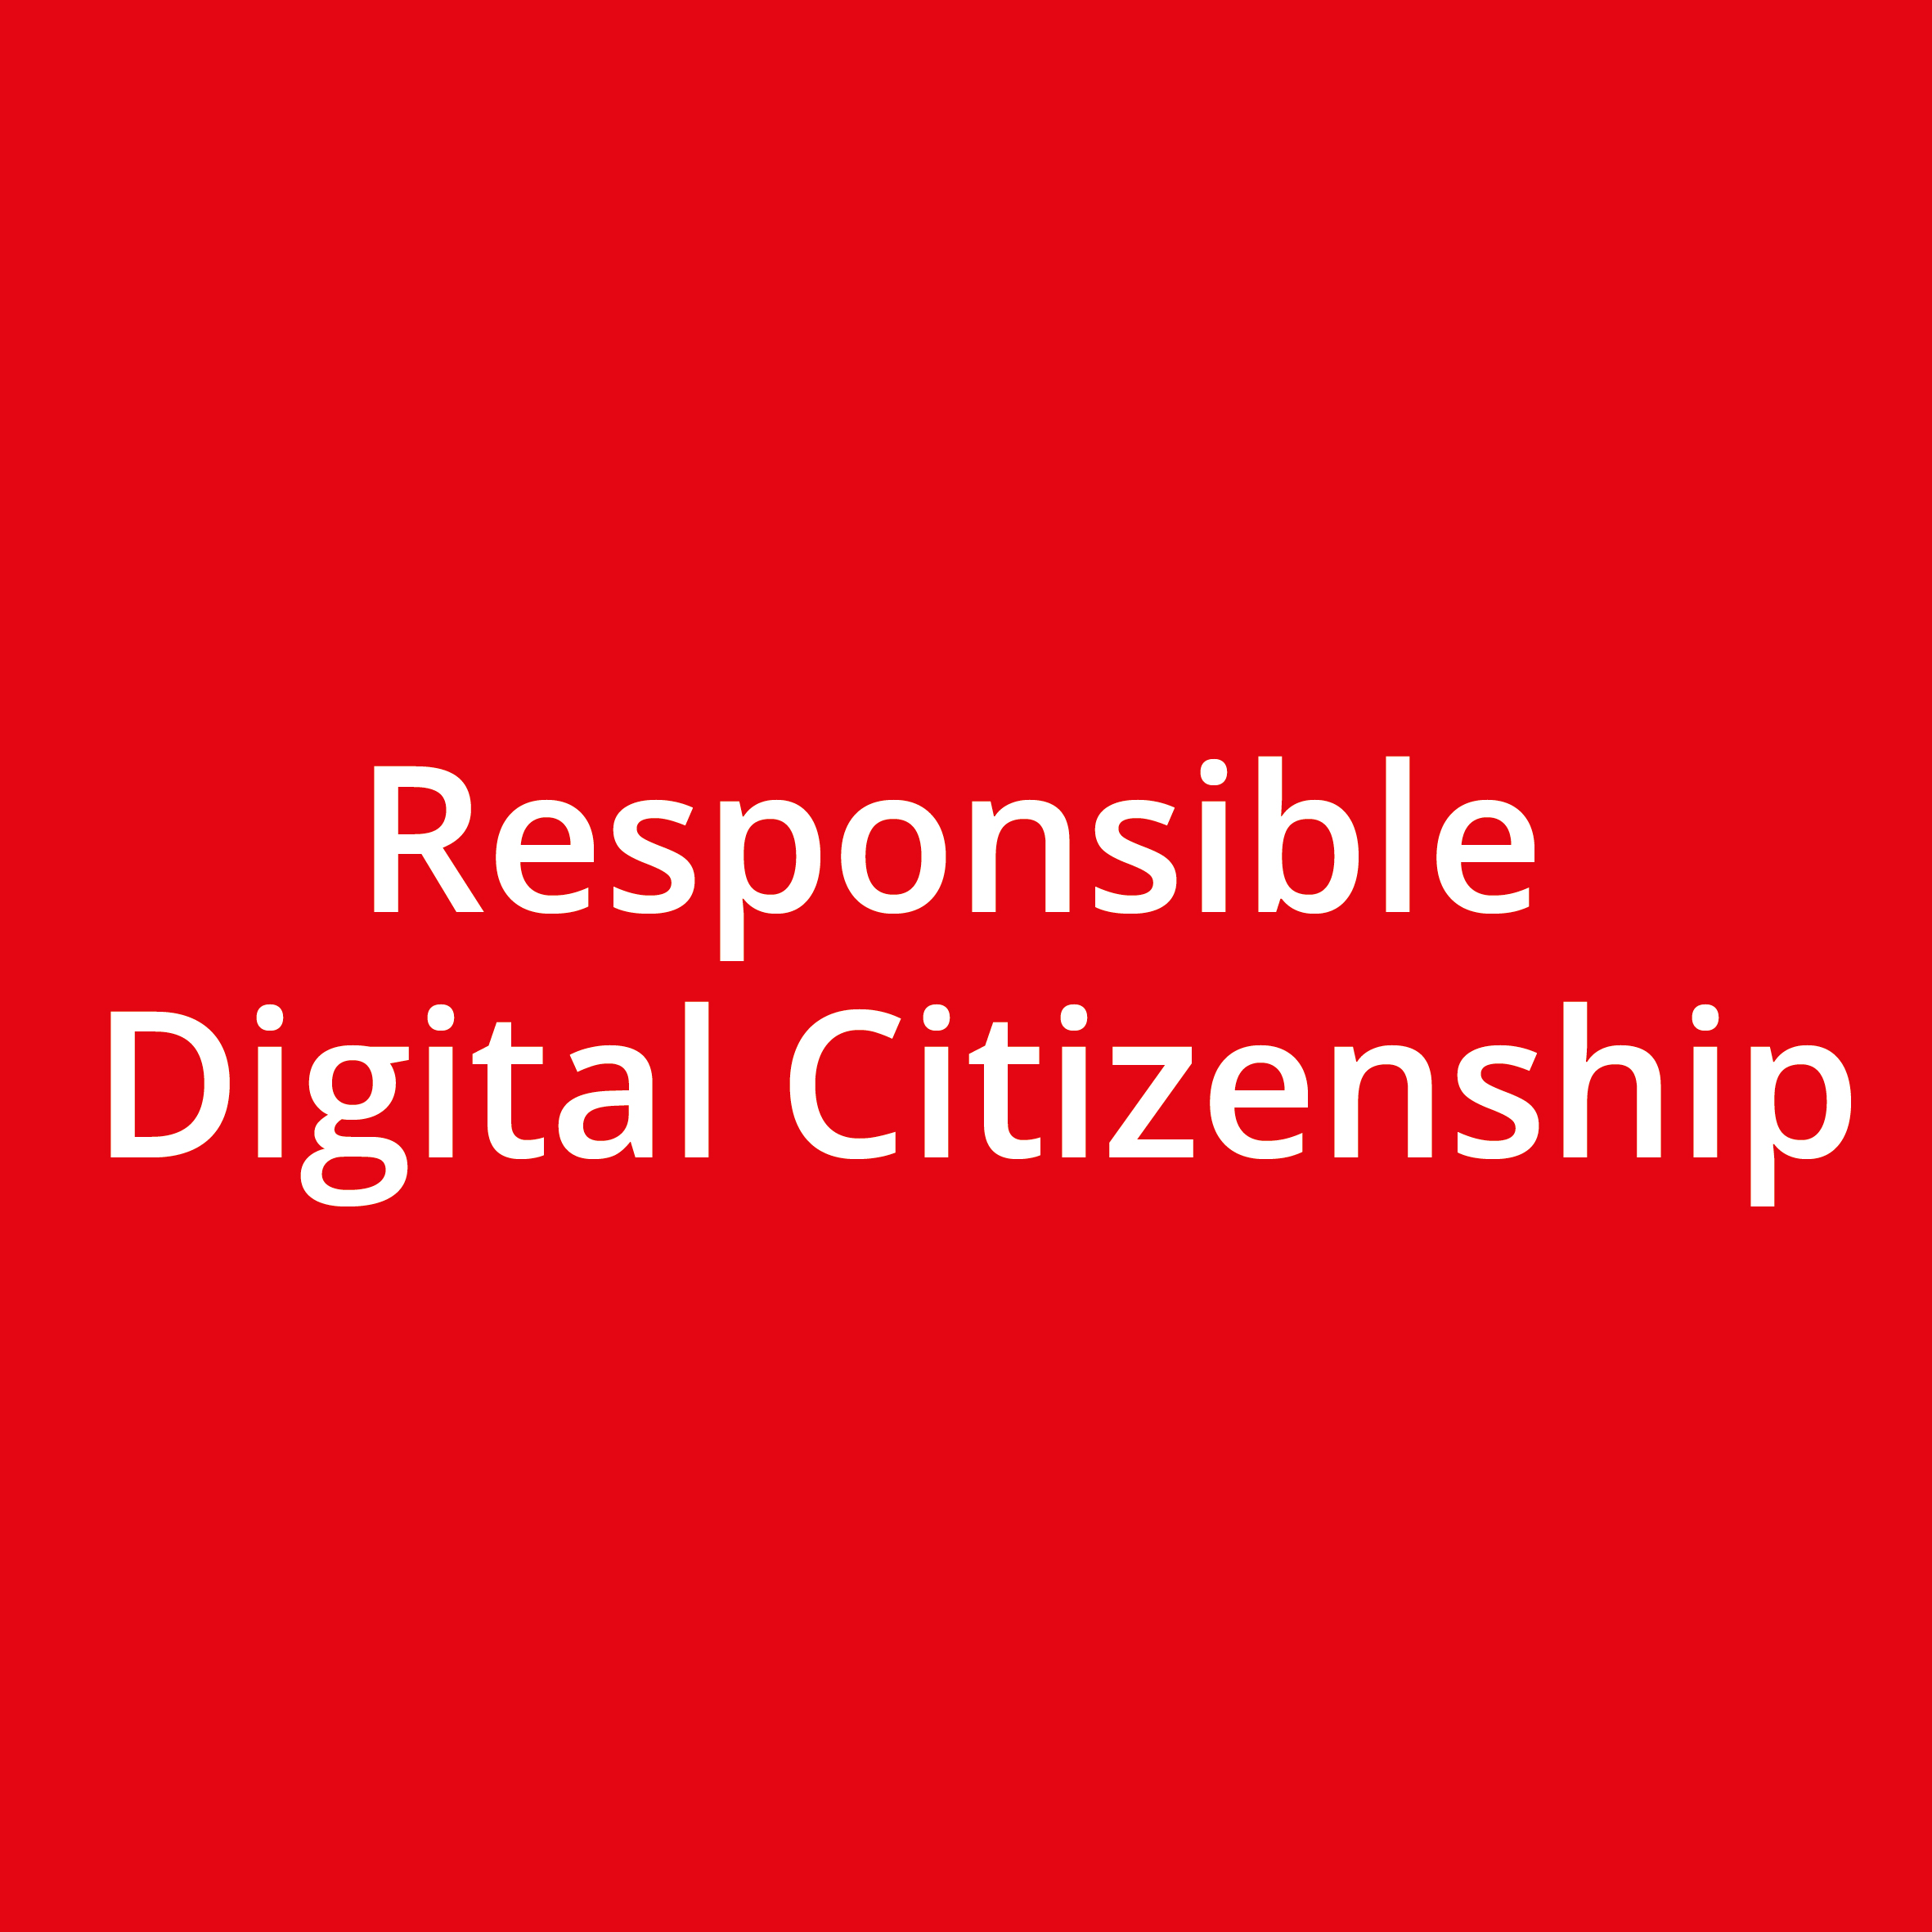 Responsible Digital Citizenship